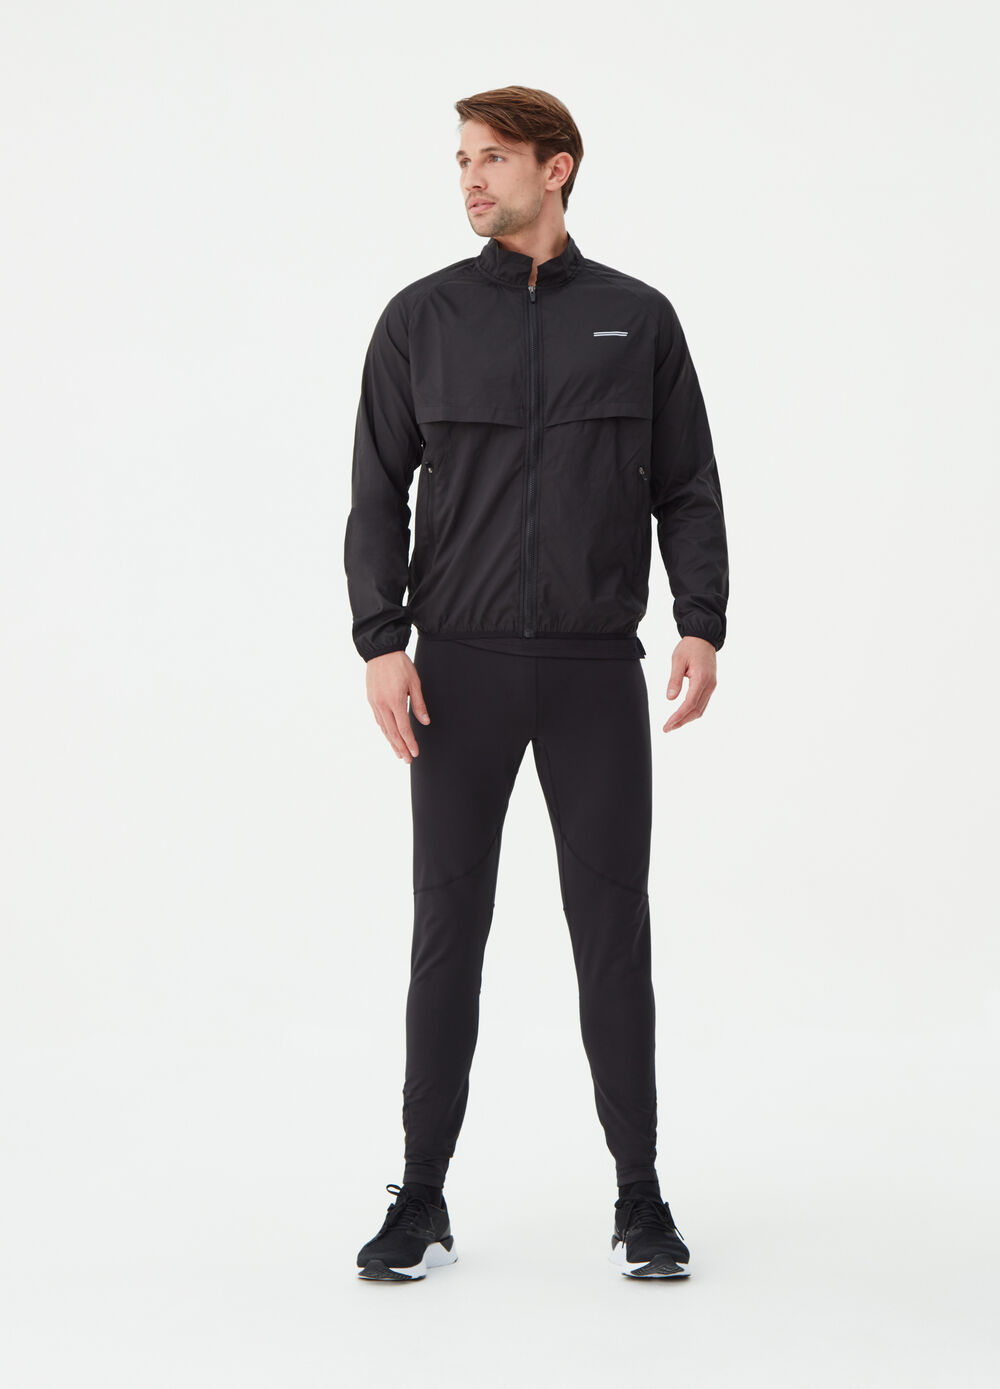 Lightweight jacket with high neck and pockets with zip